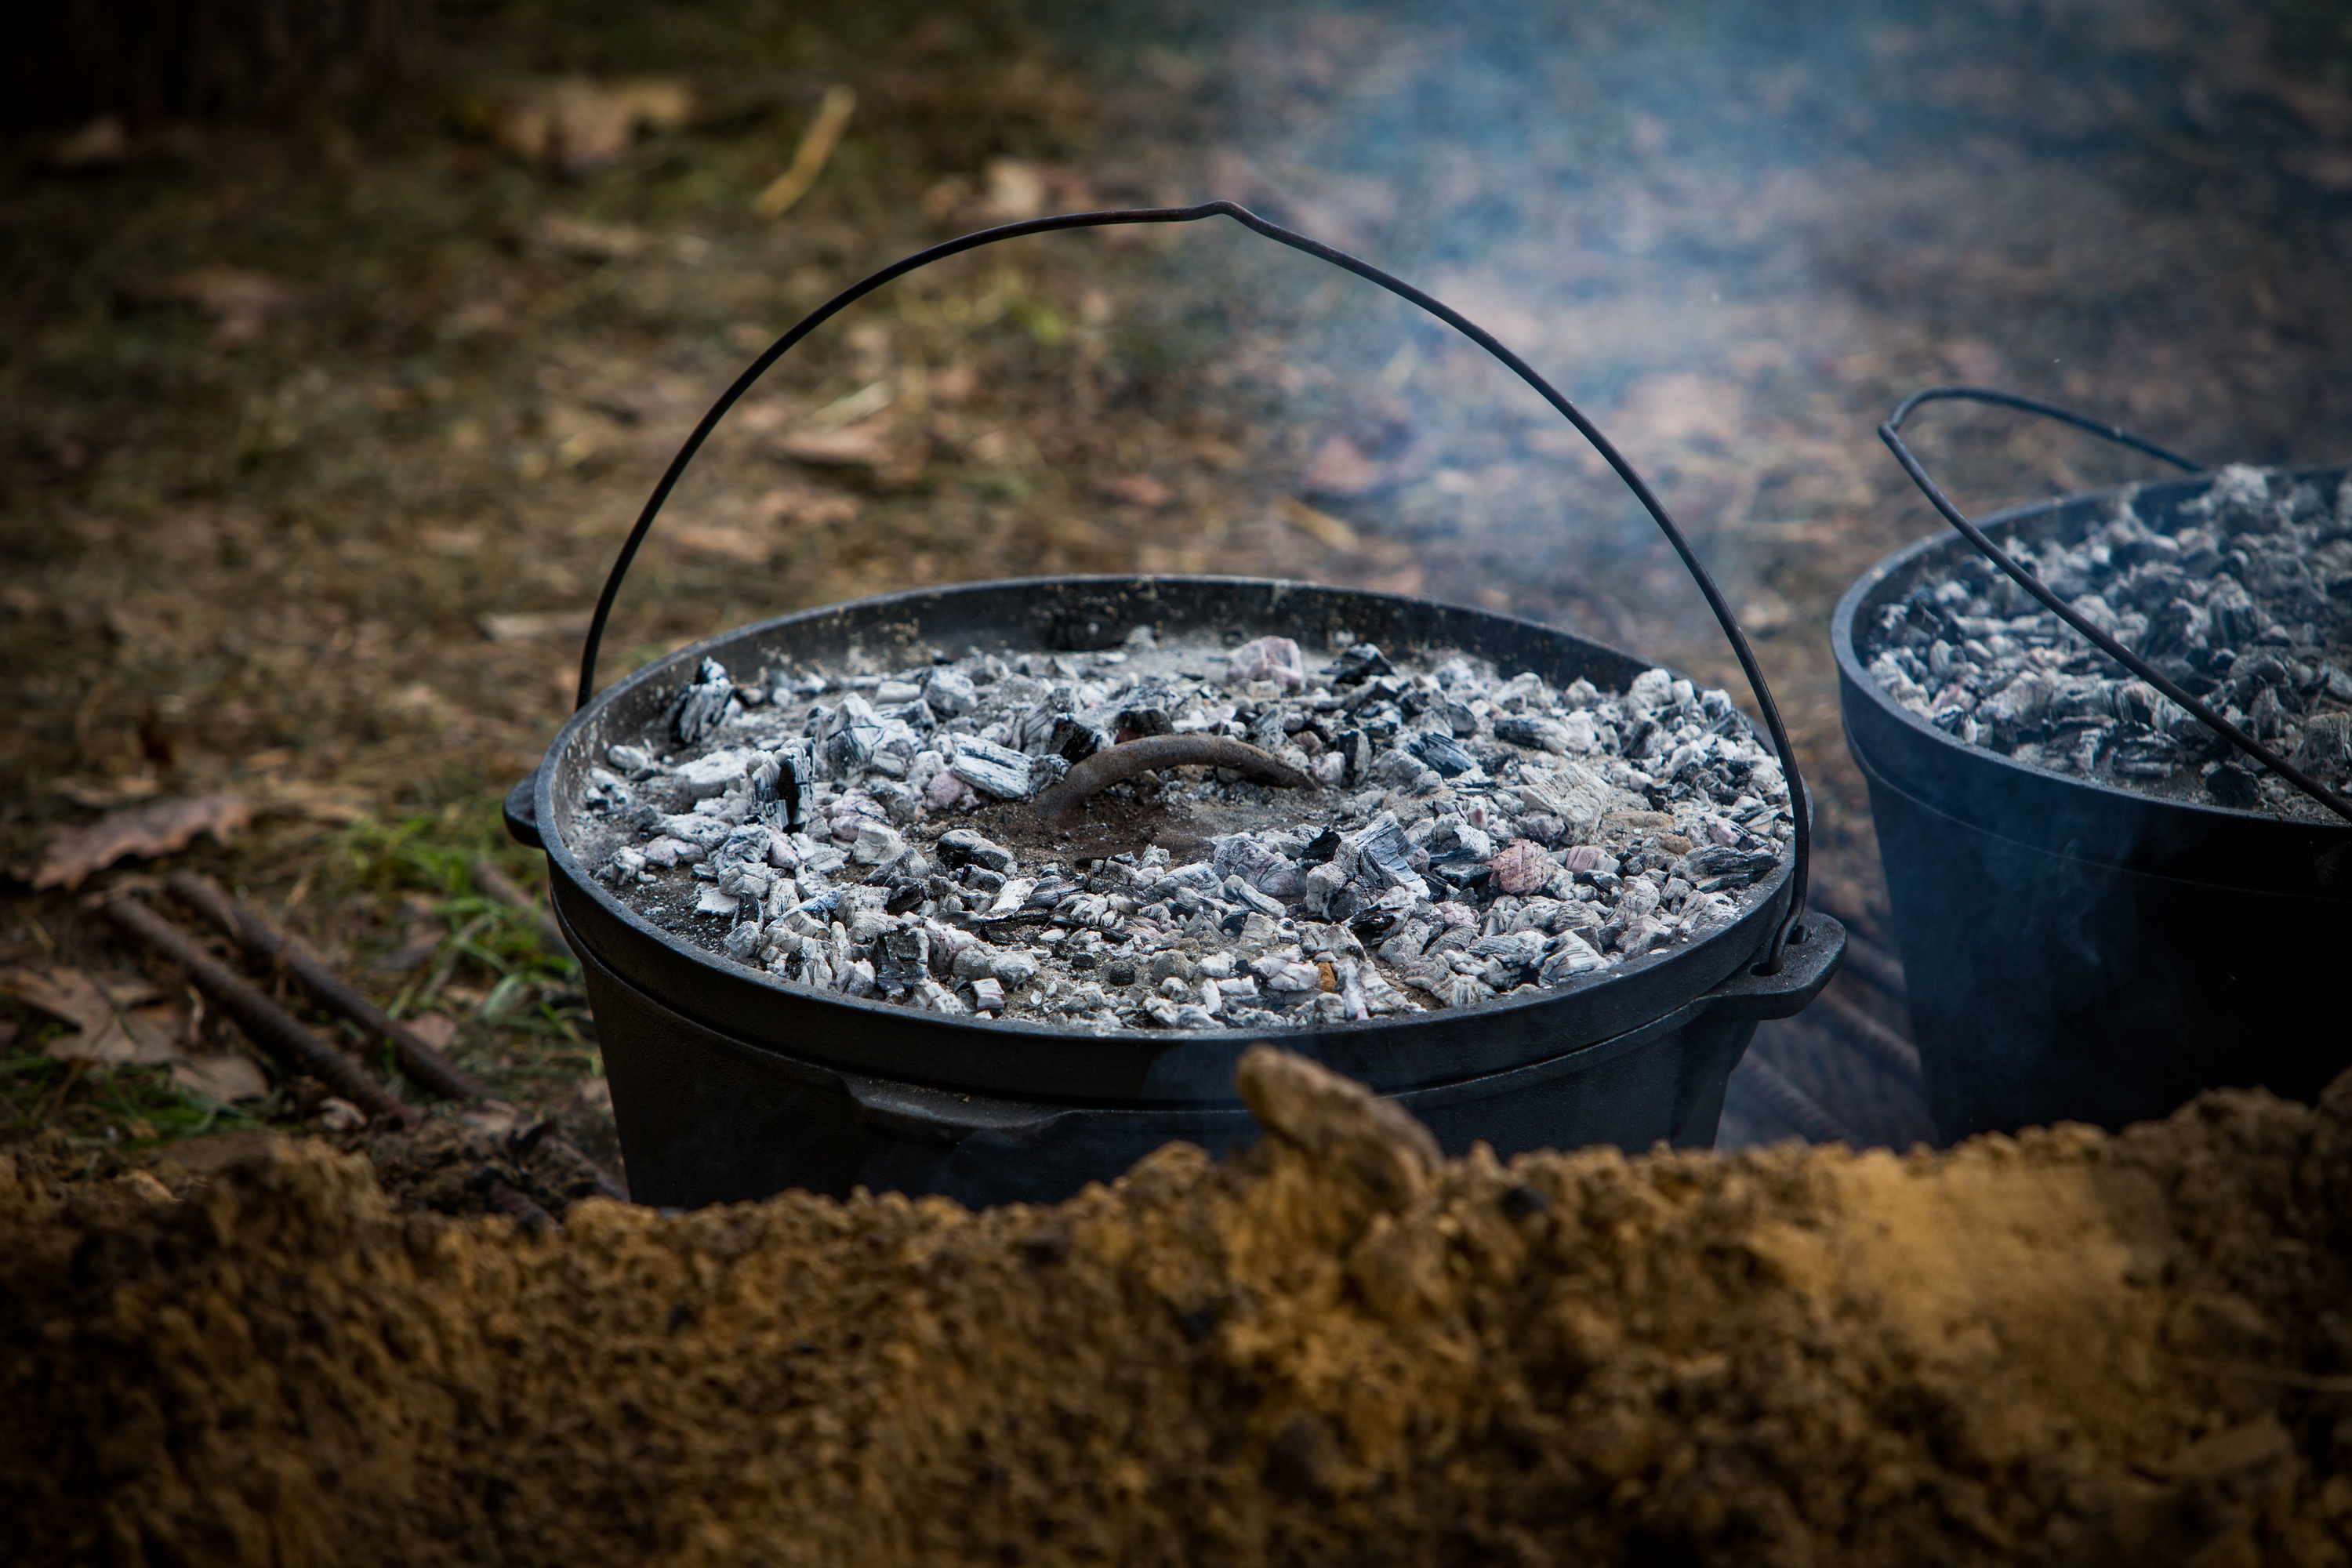 campfire cooking | camping | food | campfire | dutch oven dinners | recipes | campfire recipes